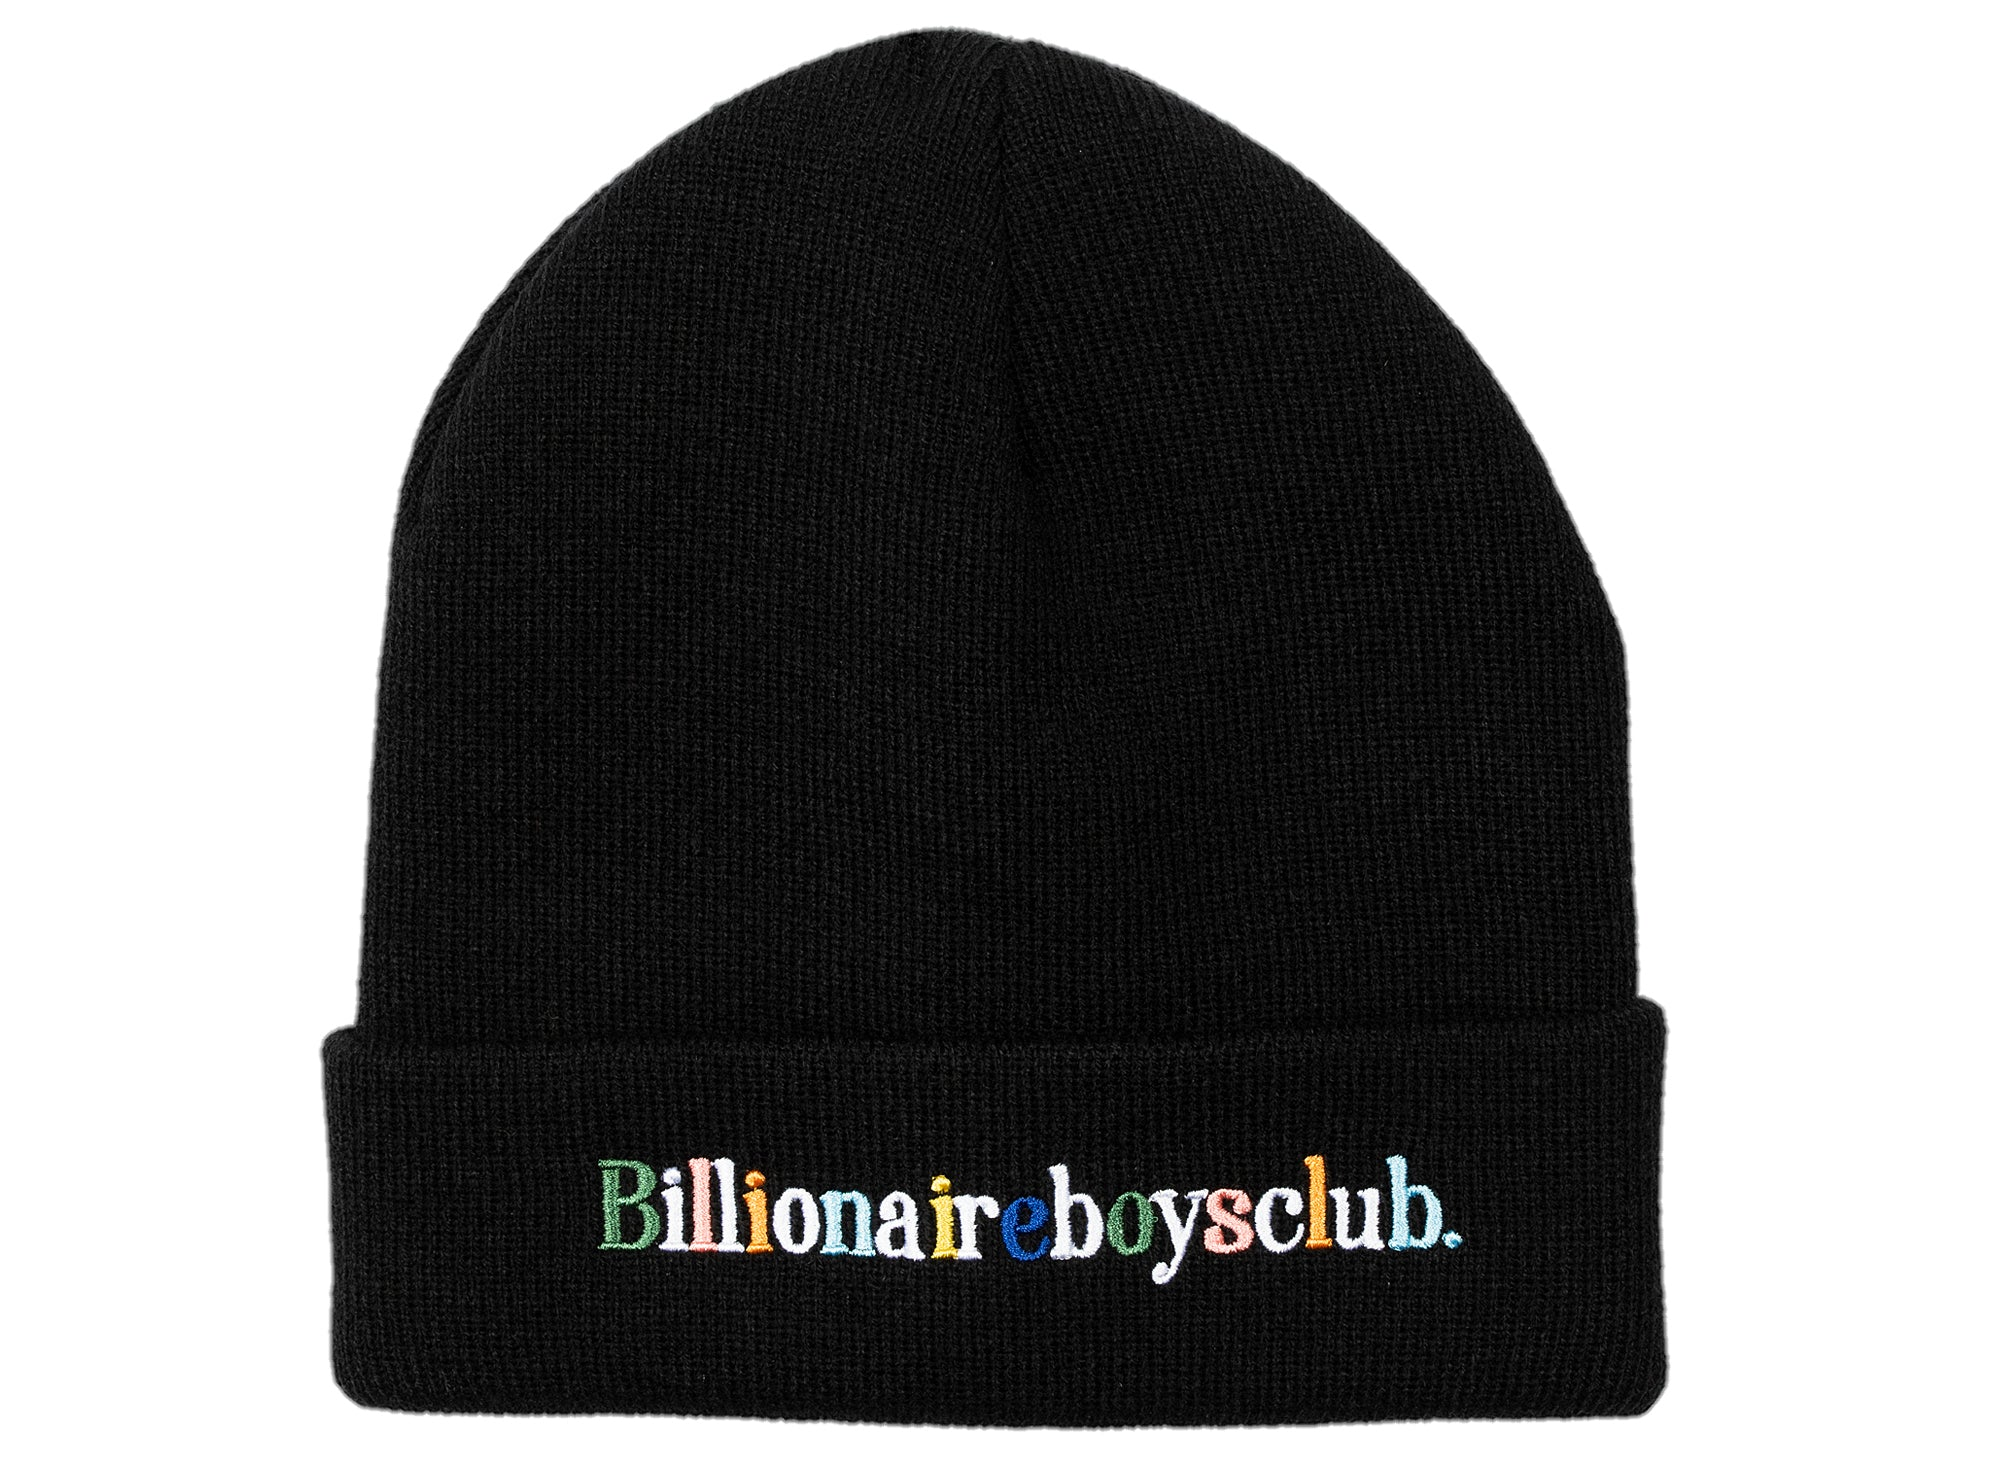 BBC Alphabet Skully Beanie in Black